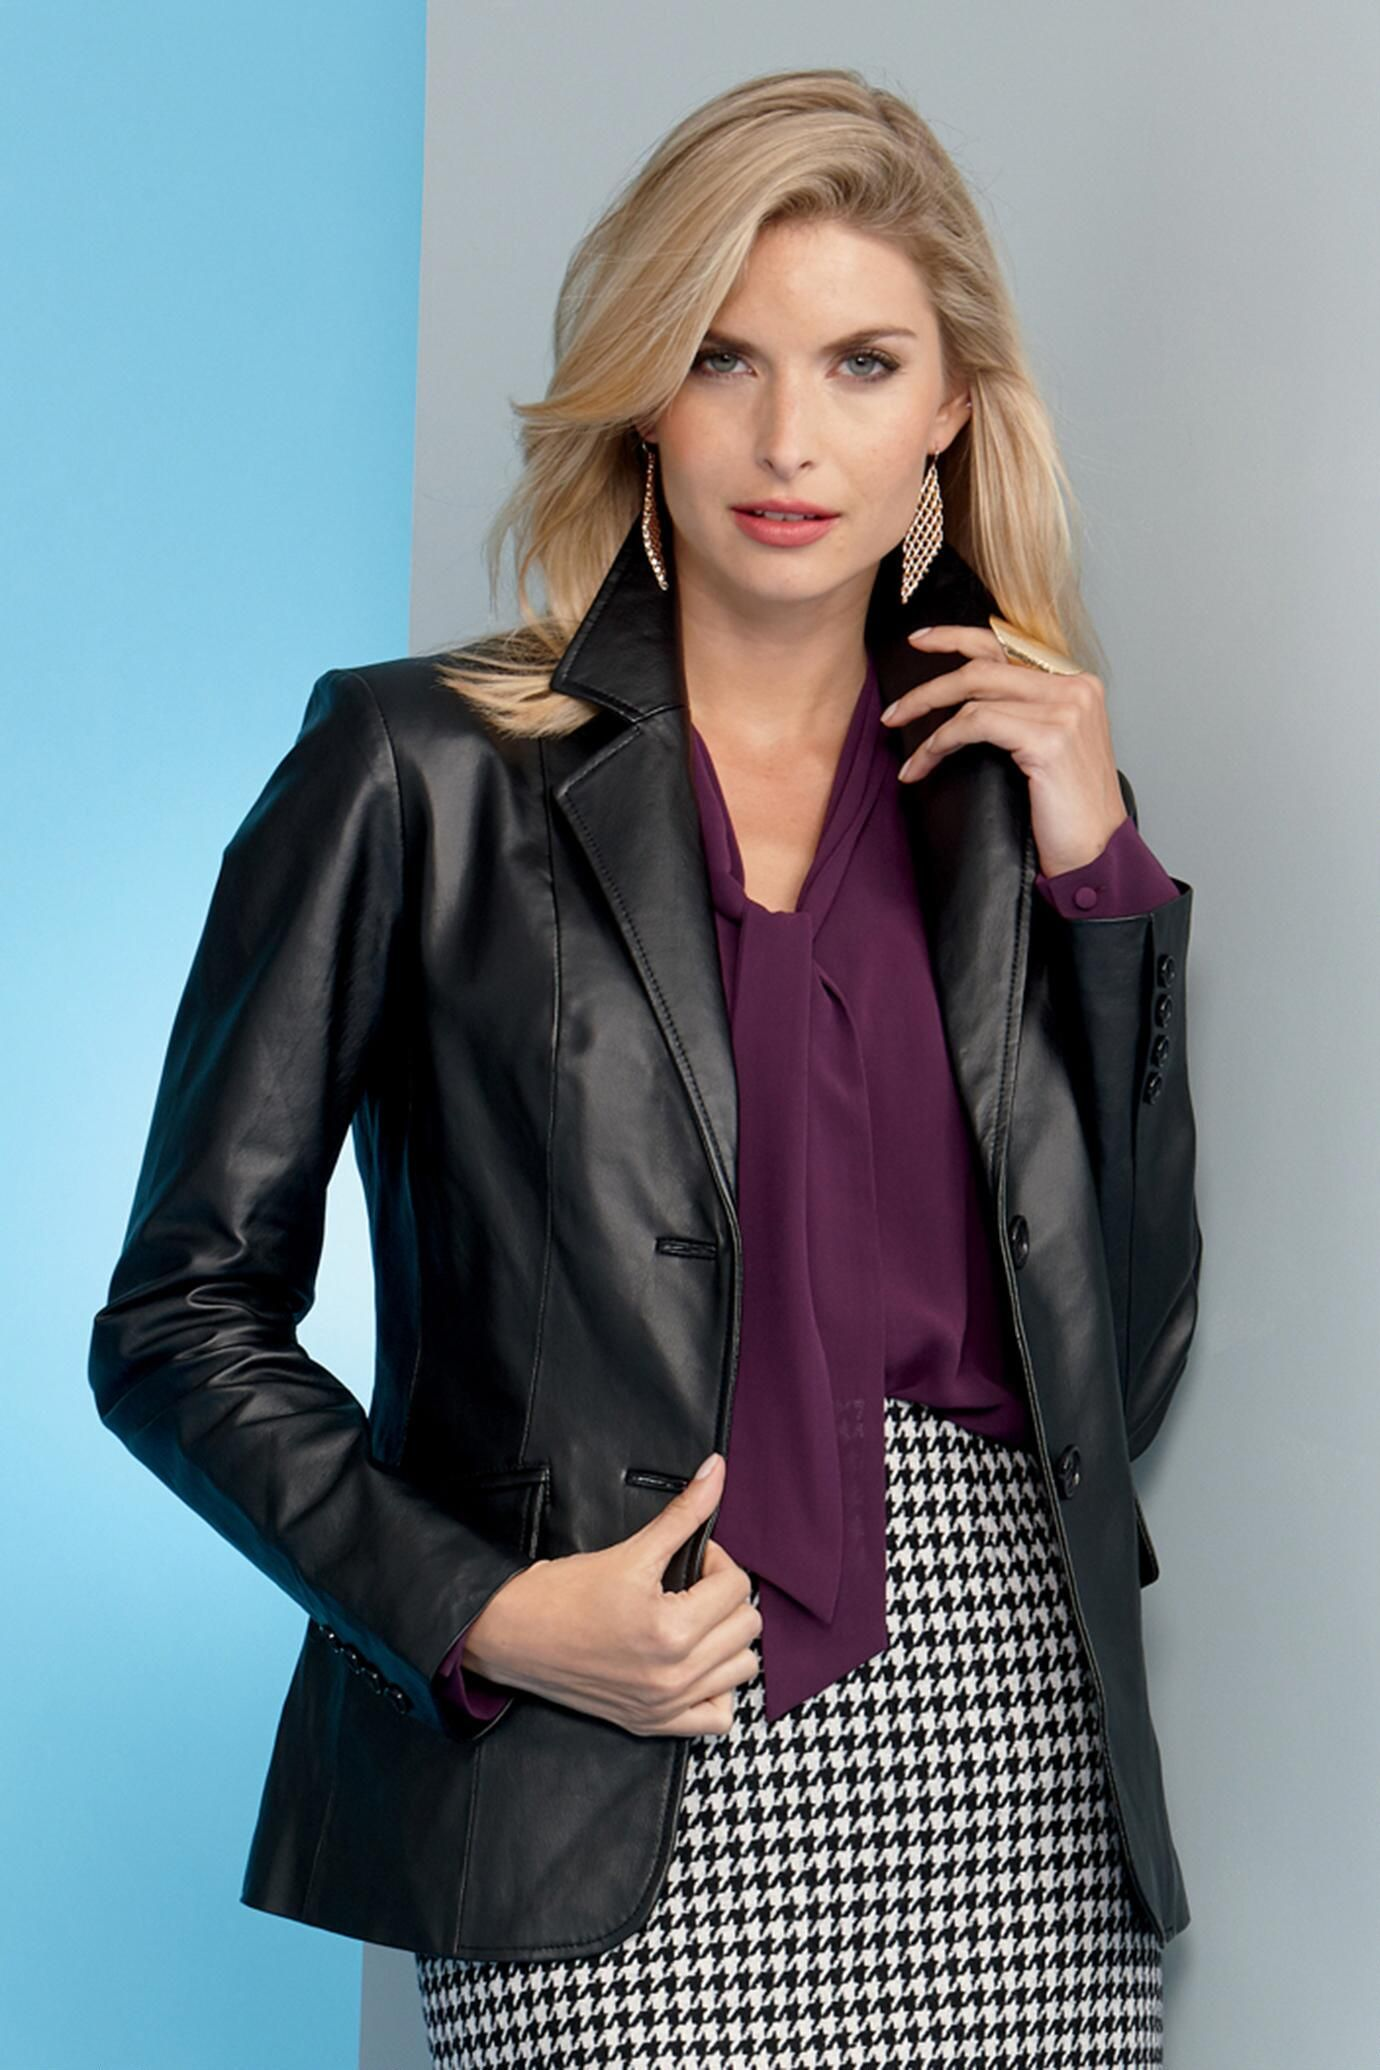 Genuine Leather Blazer: Unique & Bold Women's Clothing from #metrostyle $49.99 - $89.99